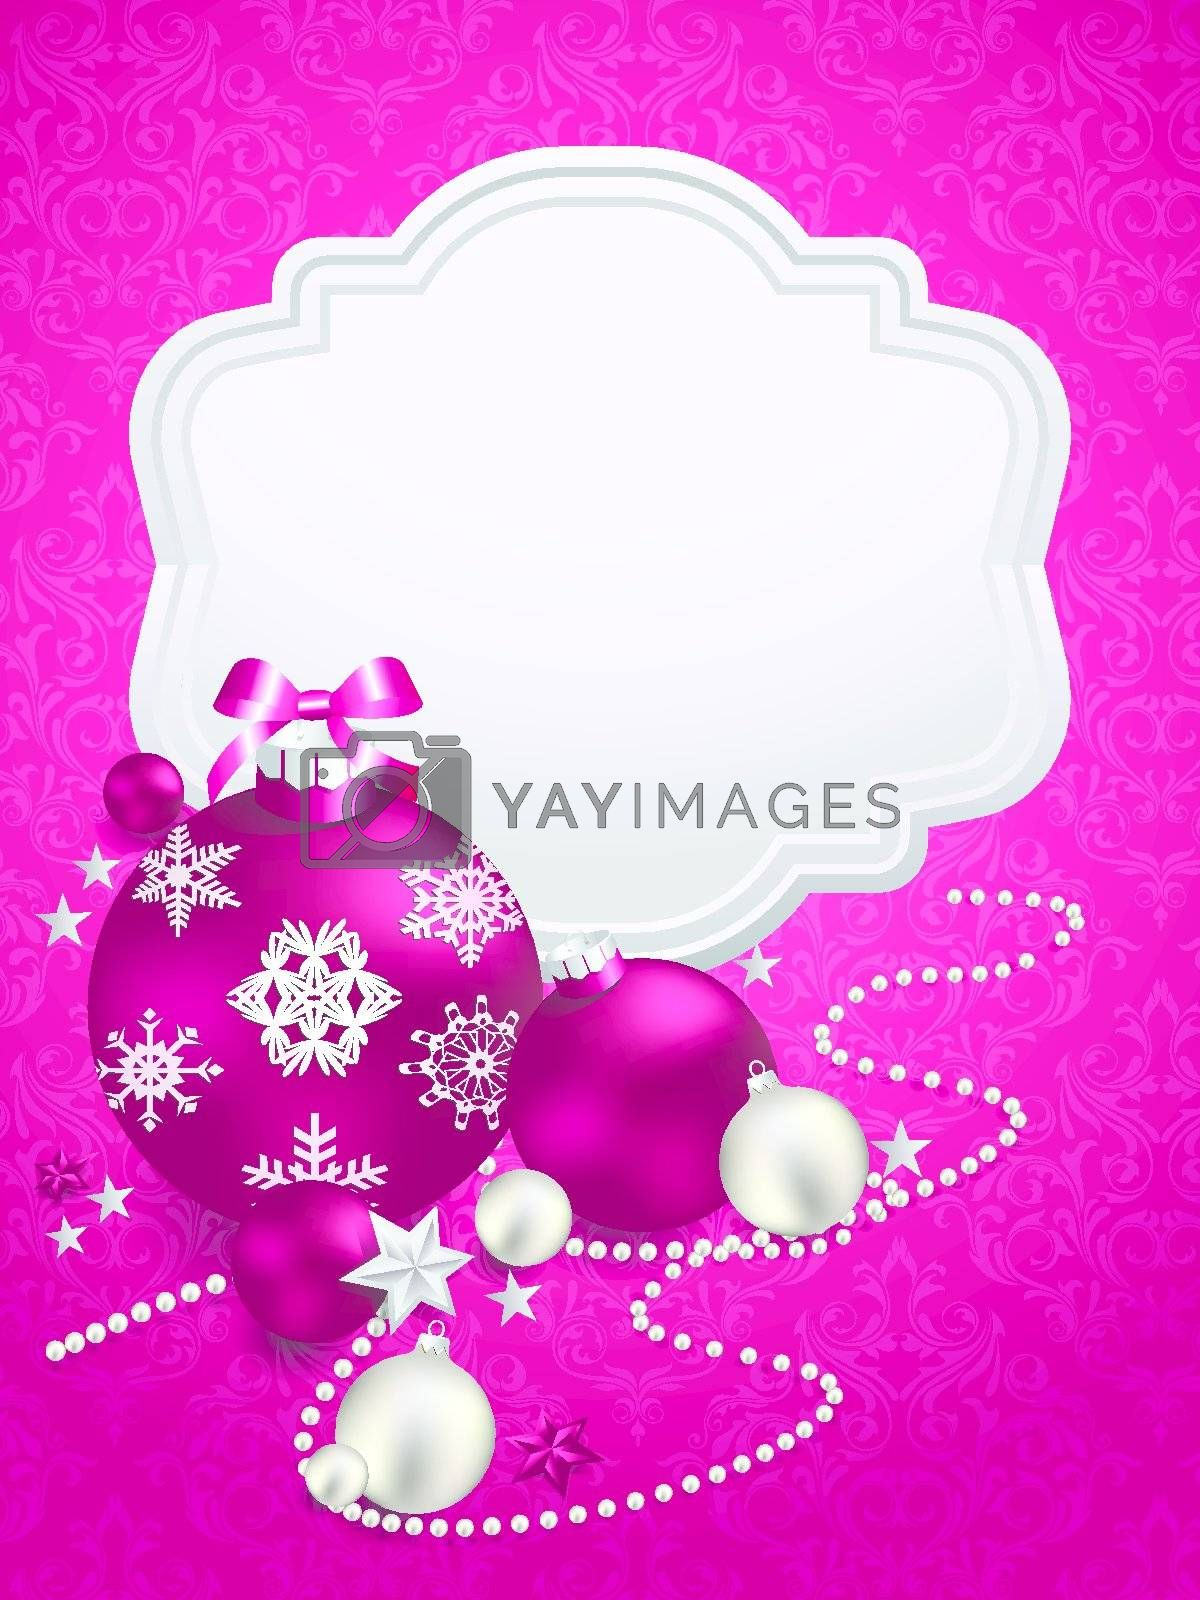 Royalty free image of Beautiful christmas background with place for text. Vector illustration by nirots